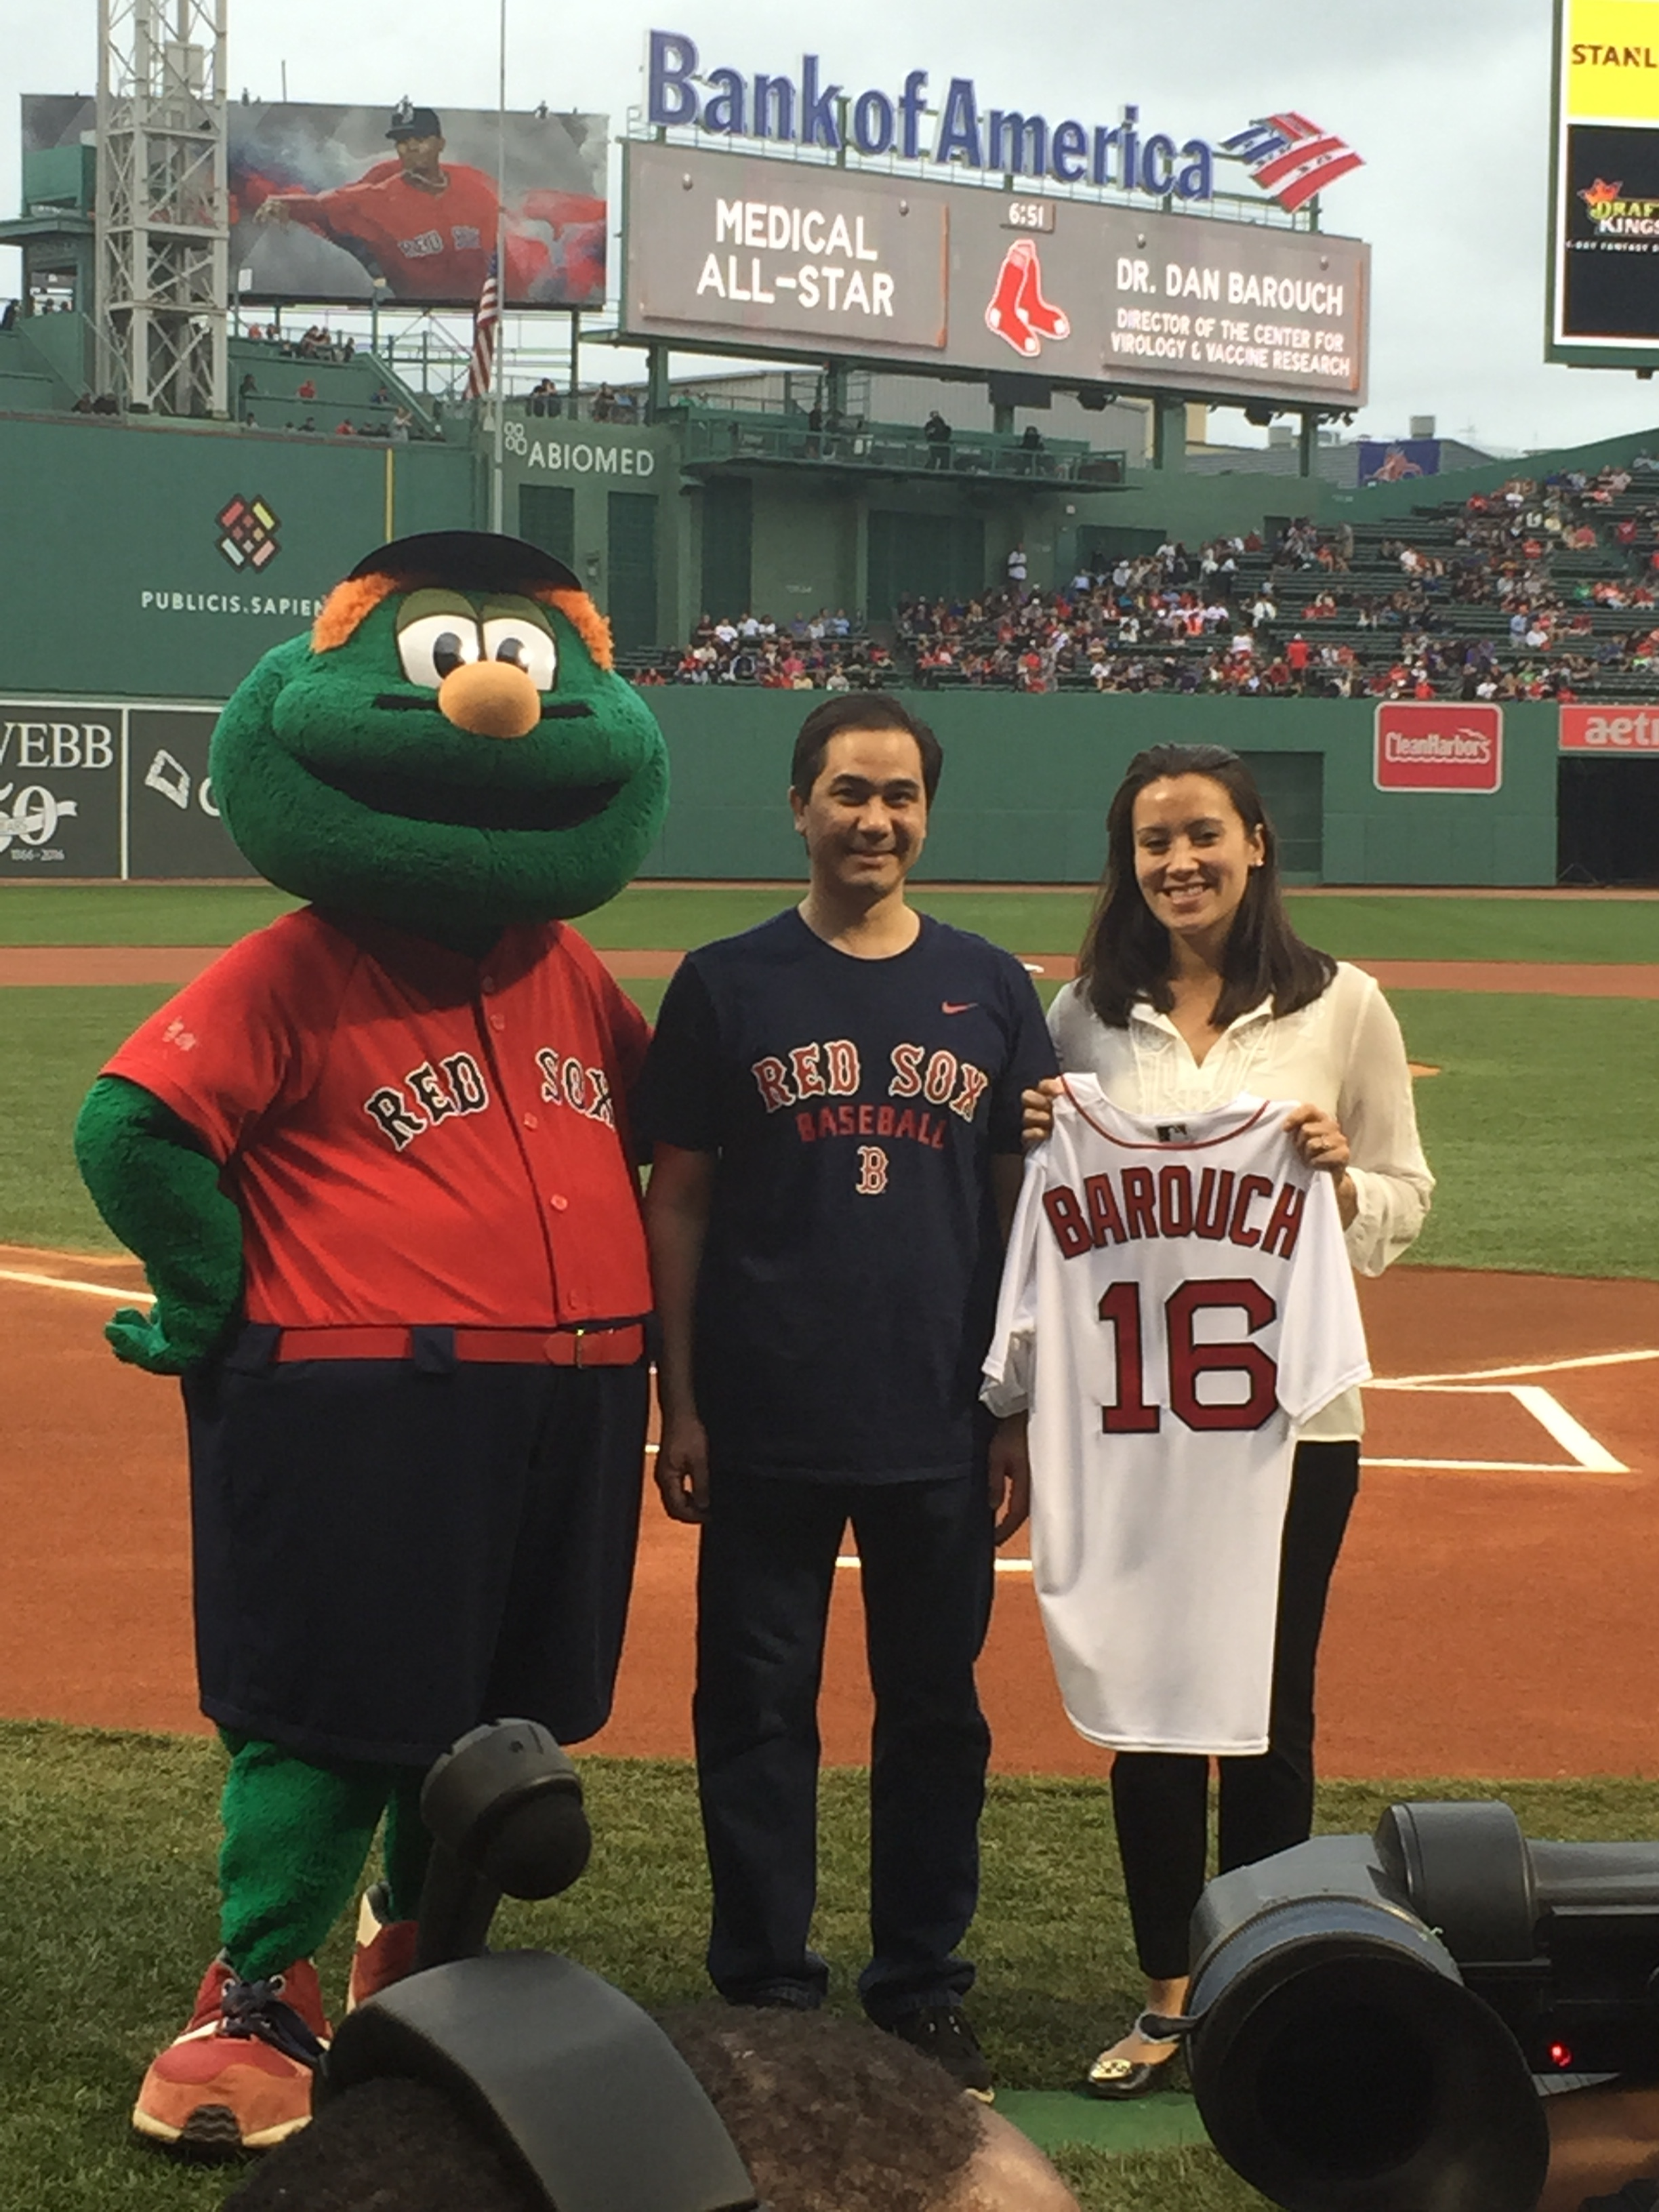 Dr. Barouch and a Red Sox official pose with Wally for a photo opp after being honored as a Medical All-Star.